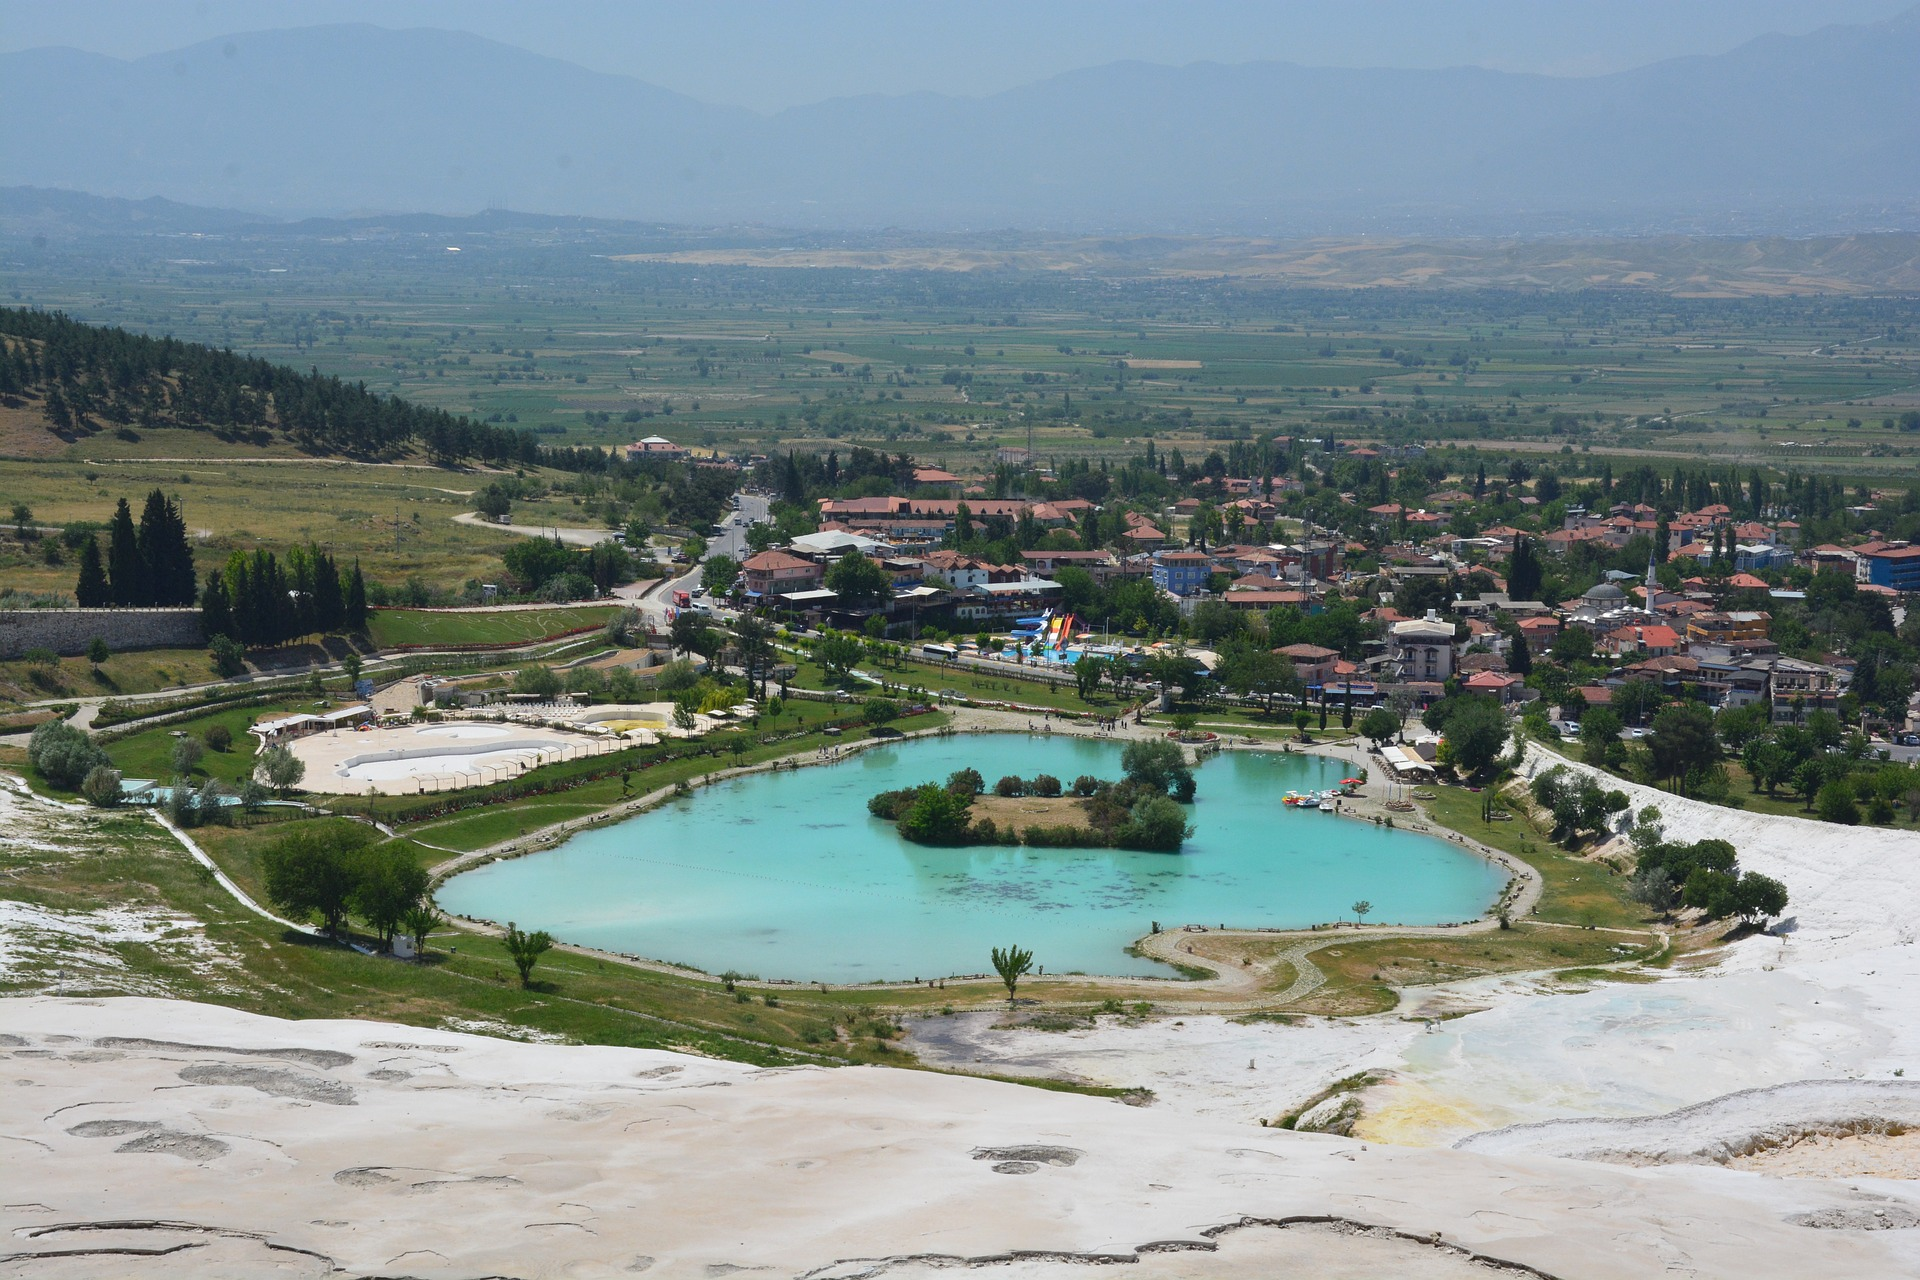 The town of Pamukkale, Turkey